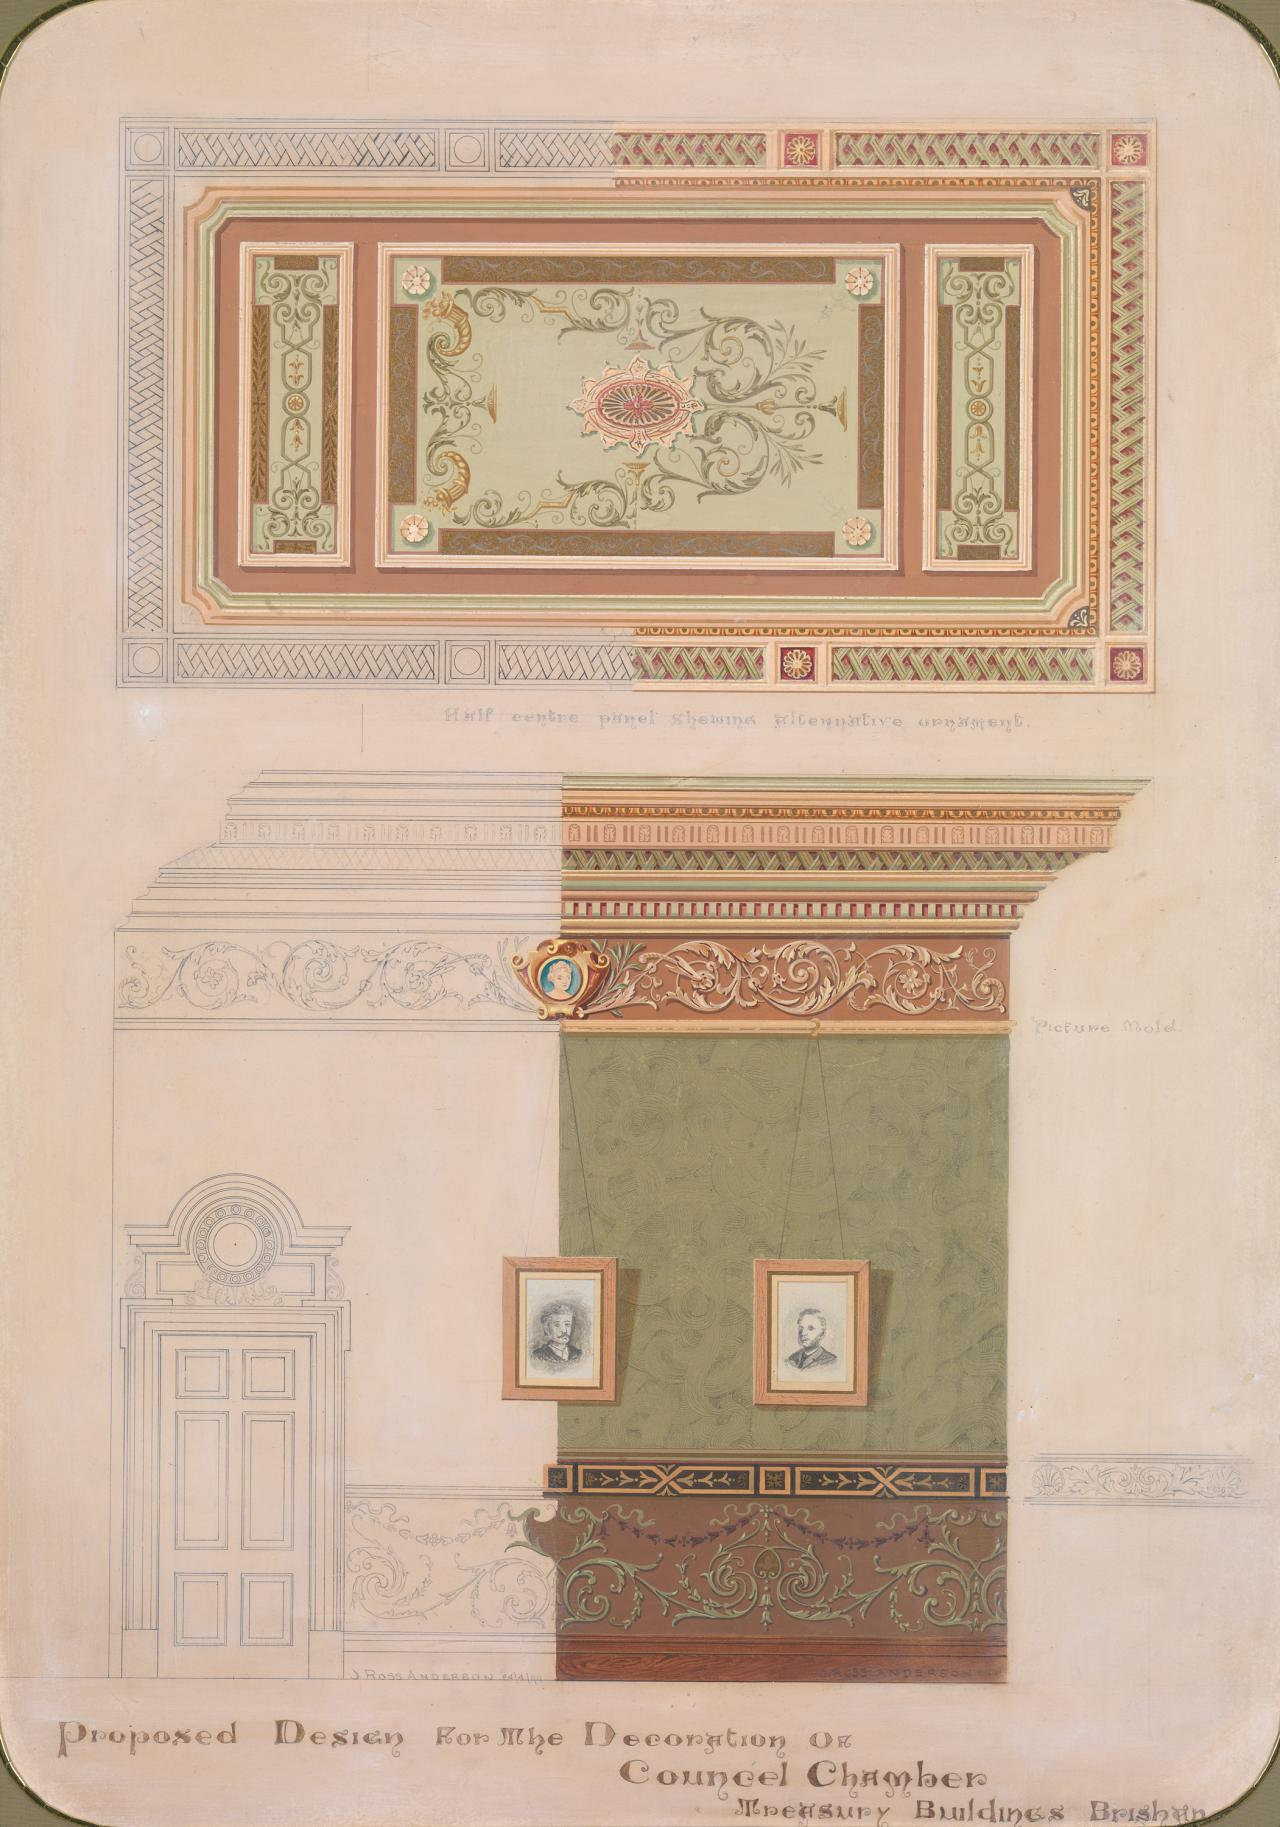 Proposed designs for the decoration of Council Chamber, Treasury Buildings, Brisbane